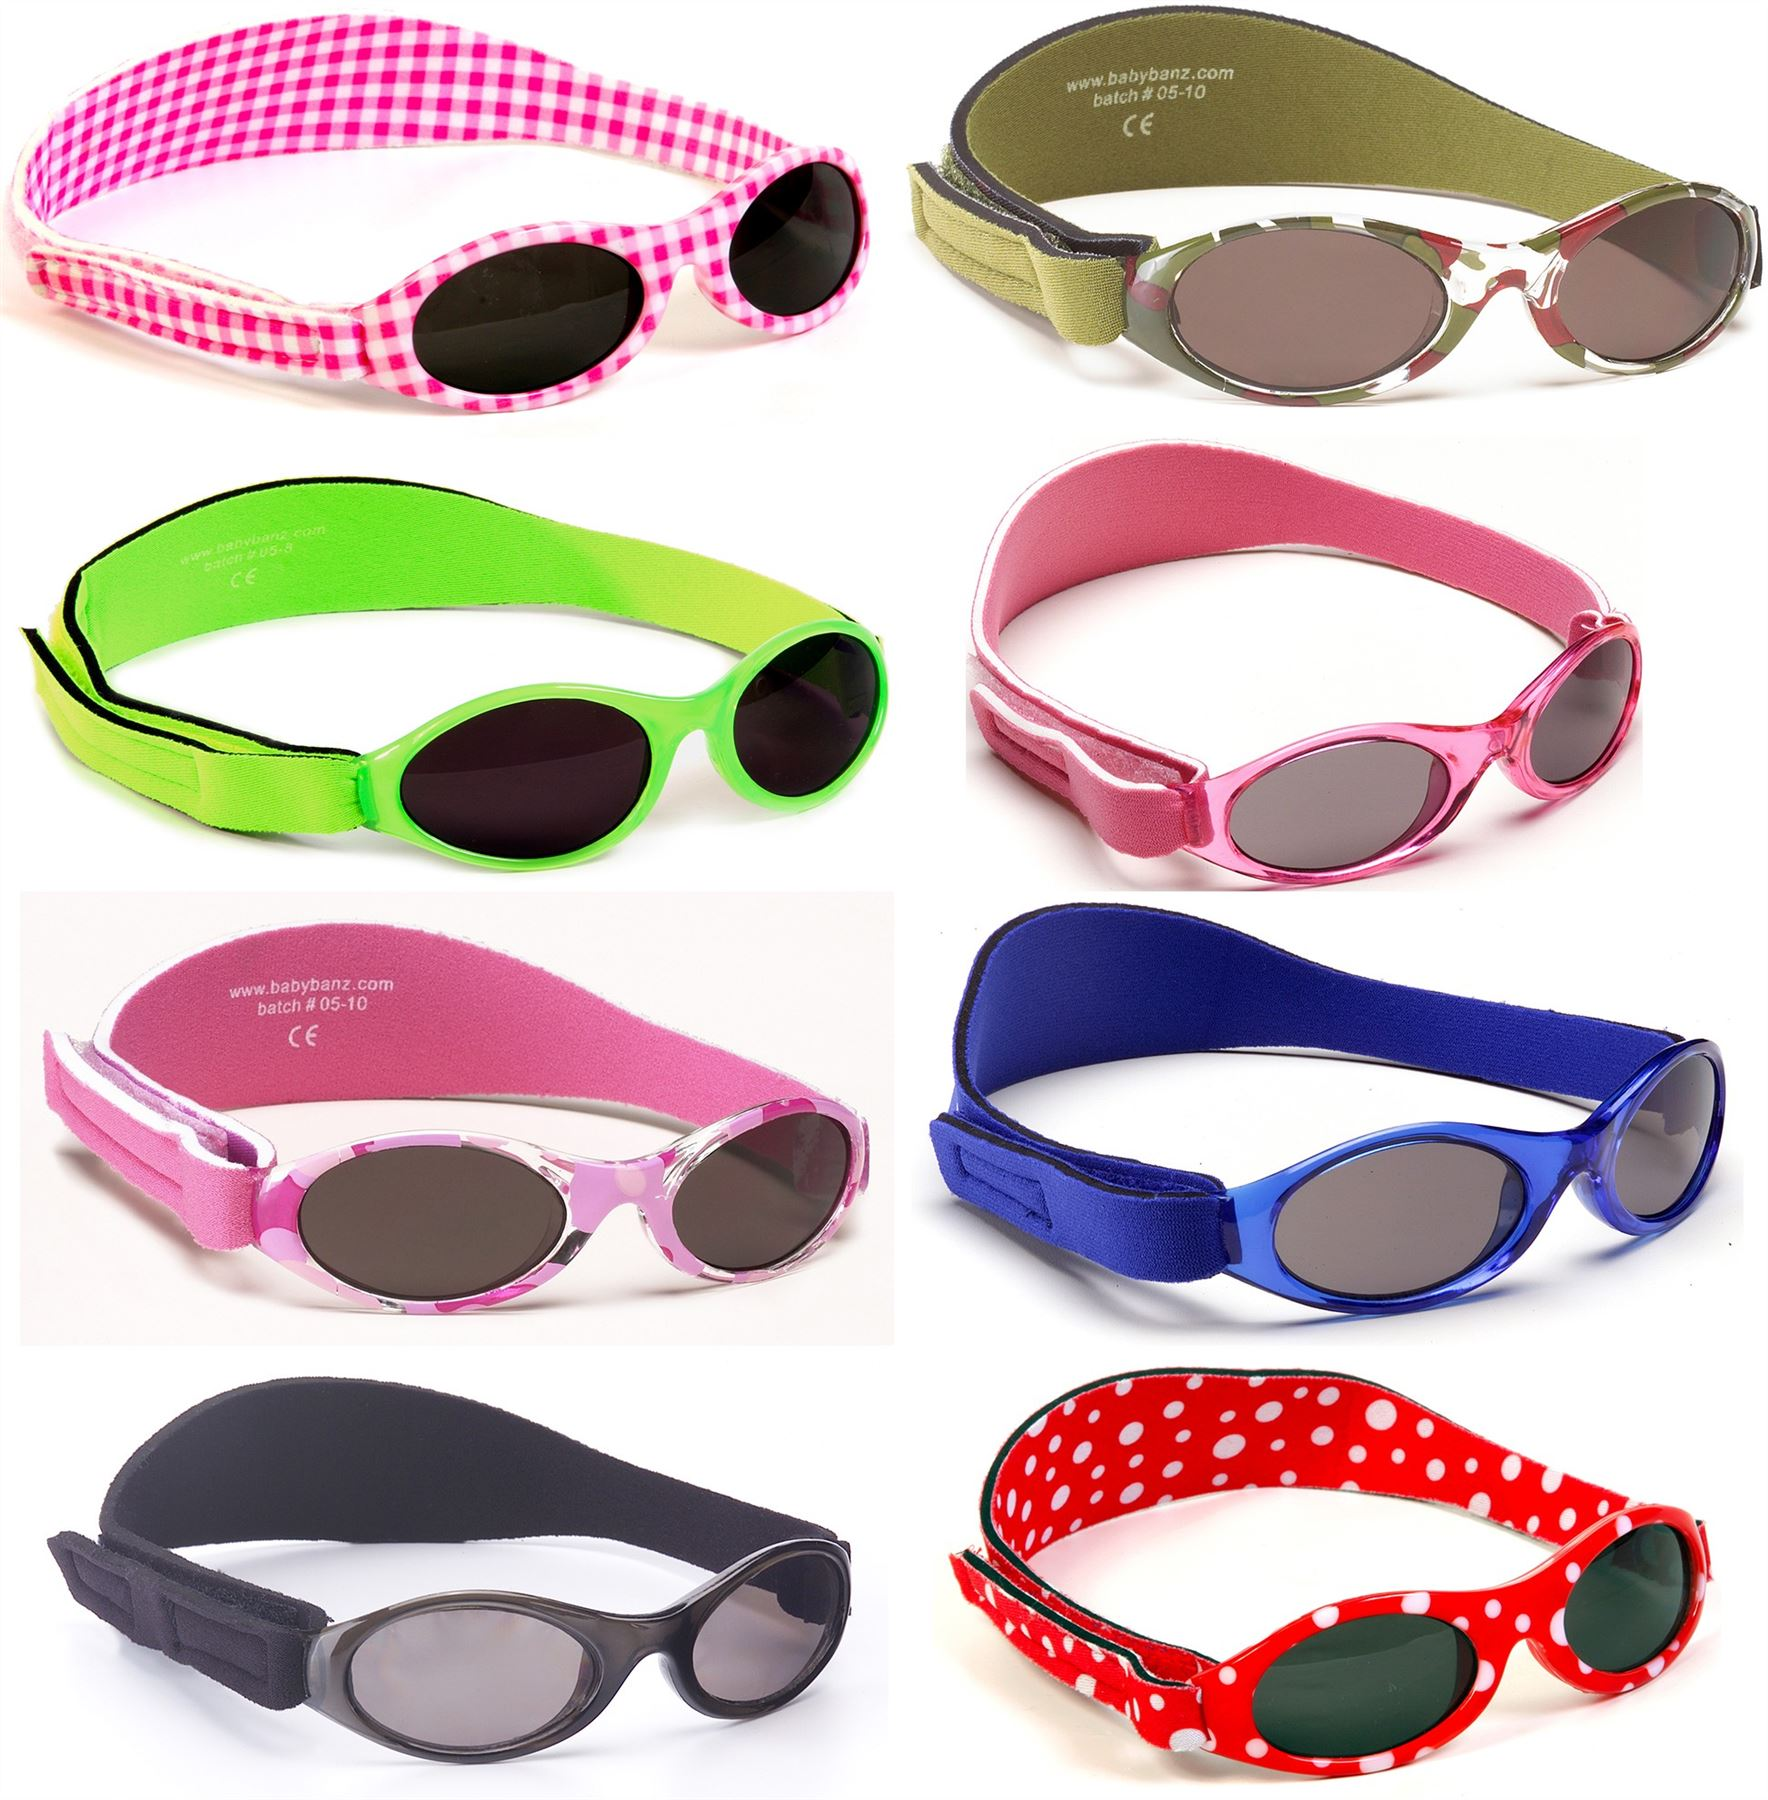 0-2 YRS 100/% UVA UVB NEW RETRO SUNGLASSES BABY BANZ